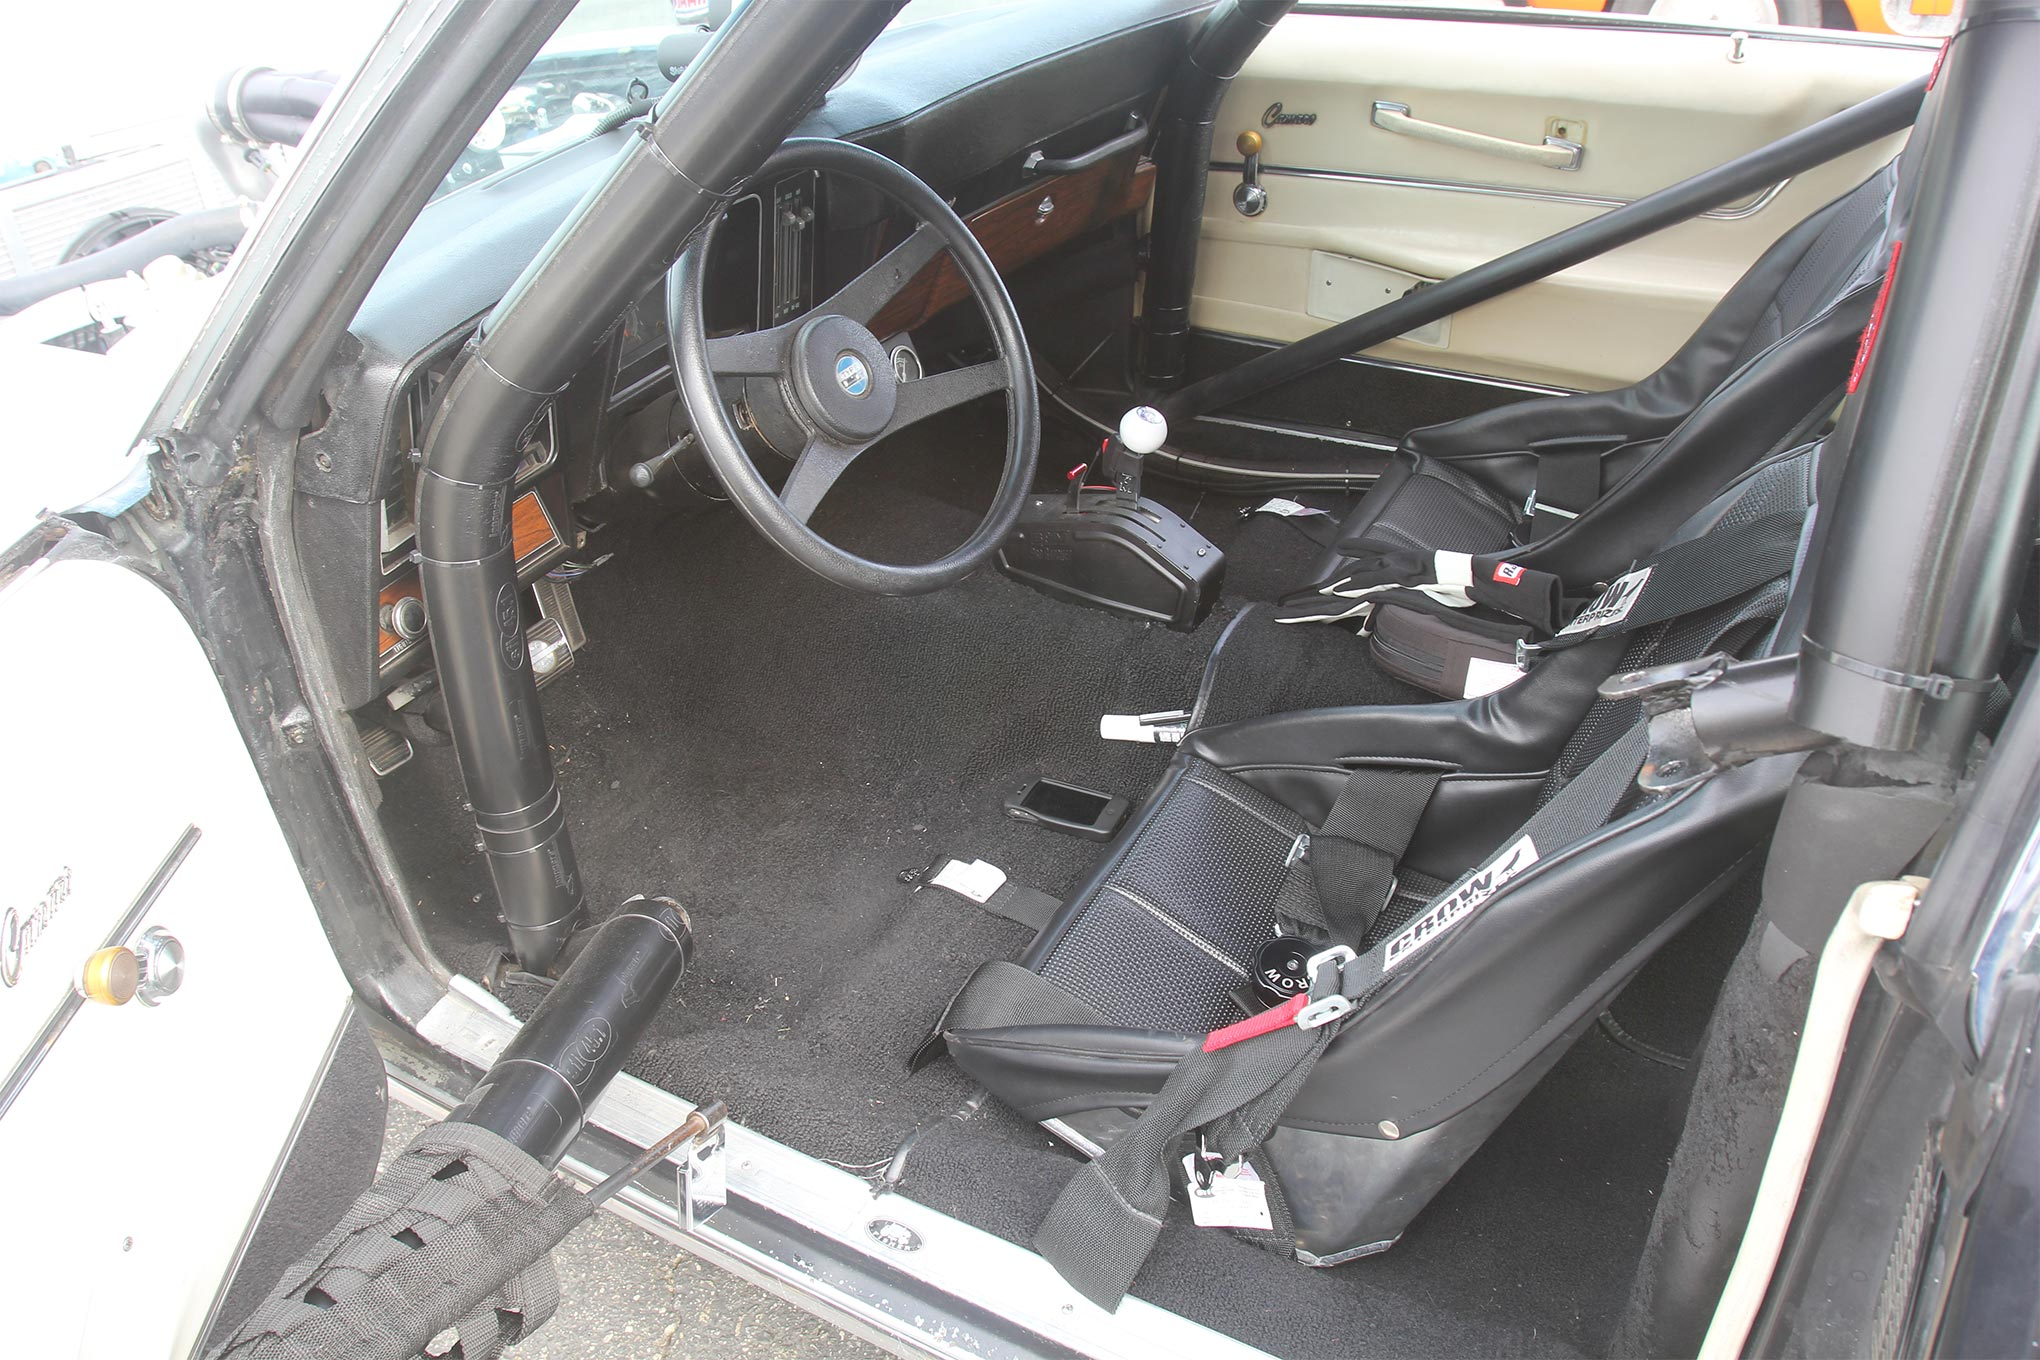 The interior of the Camaro is race-car minimal. The shifter controls a TH400 trans without the benefit of a transbrake.